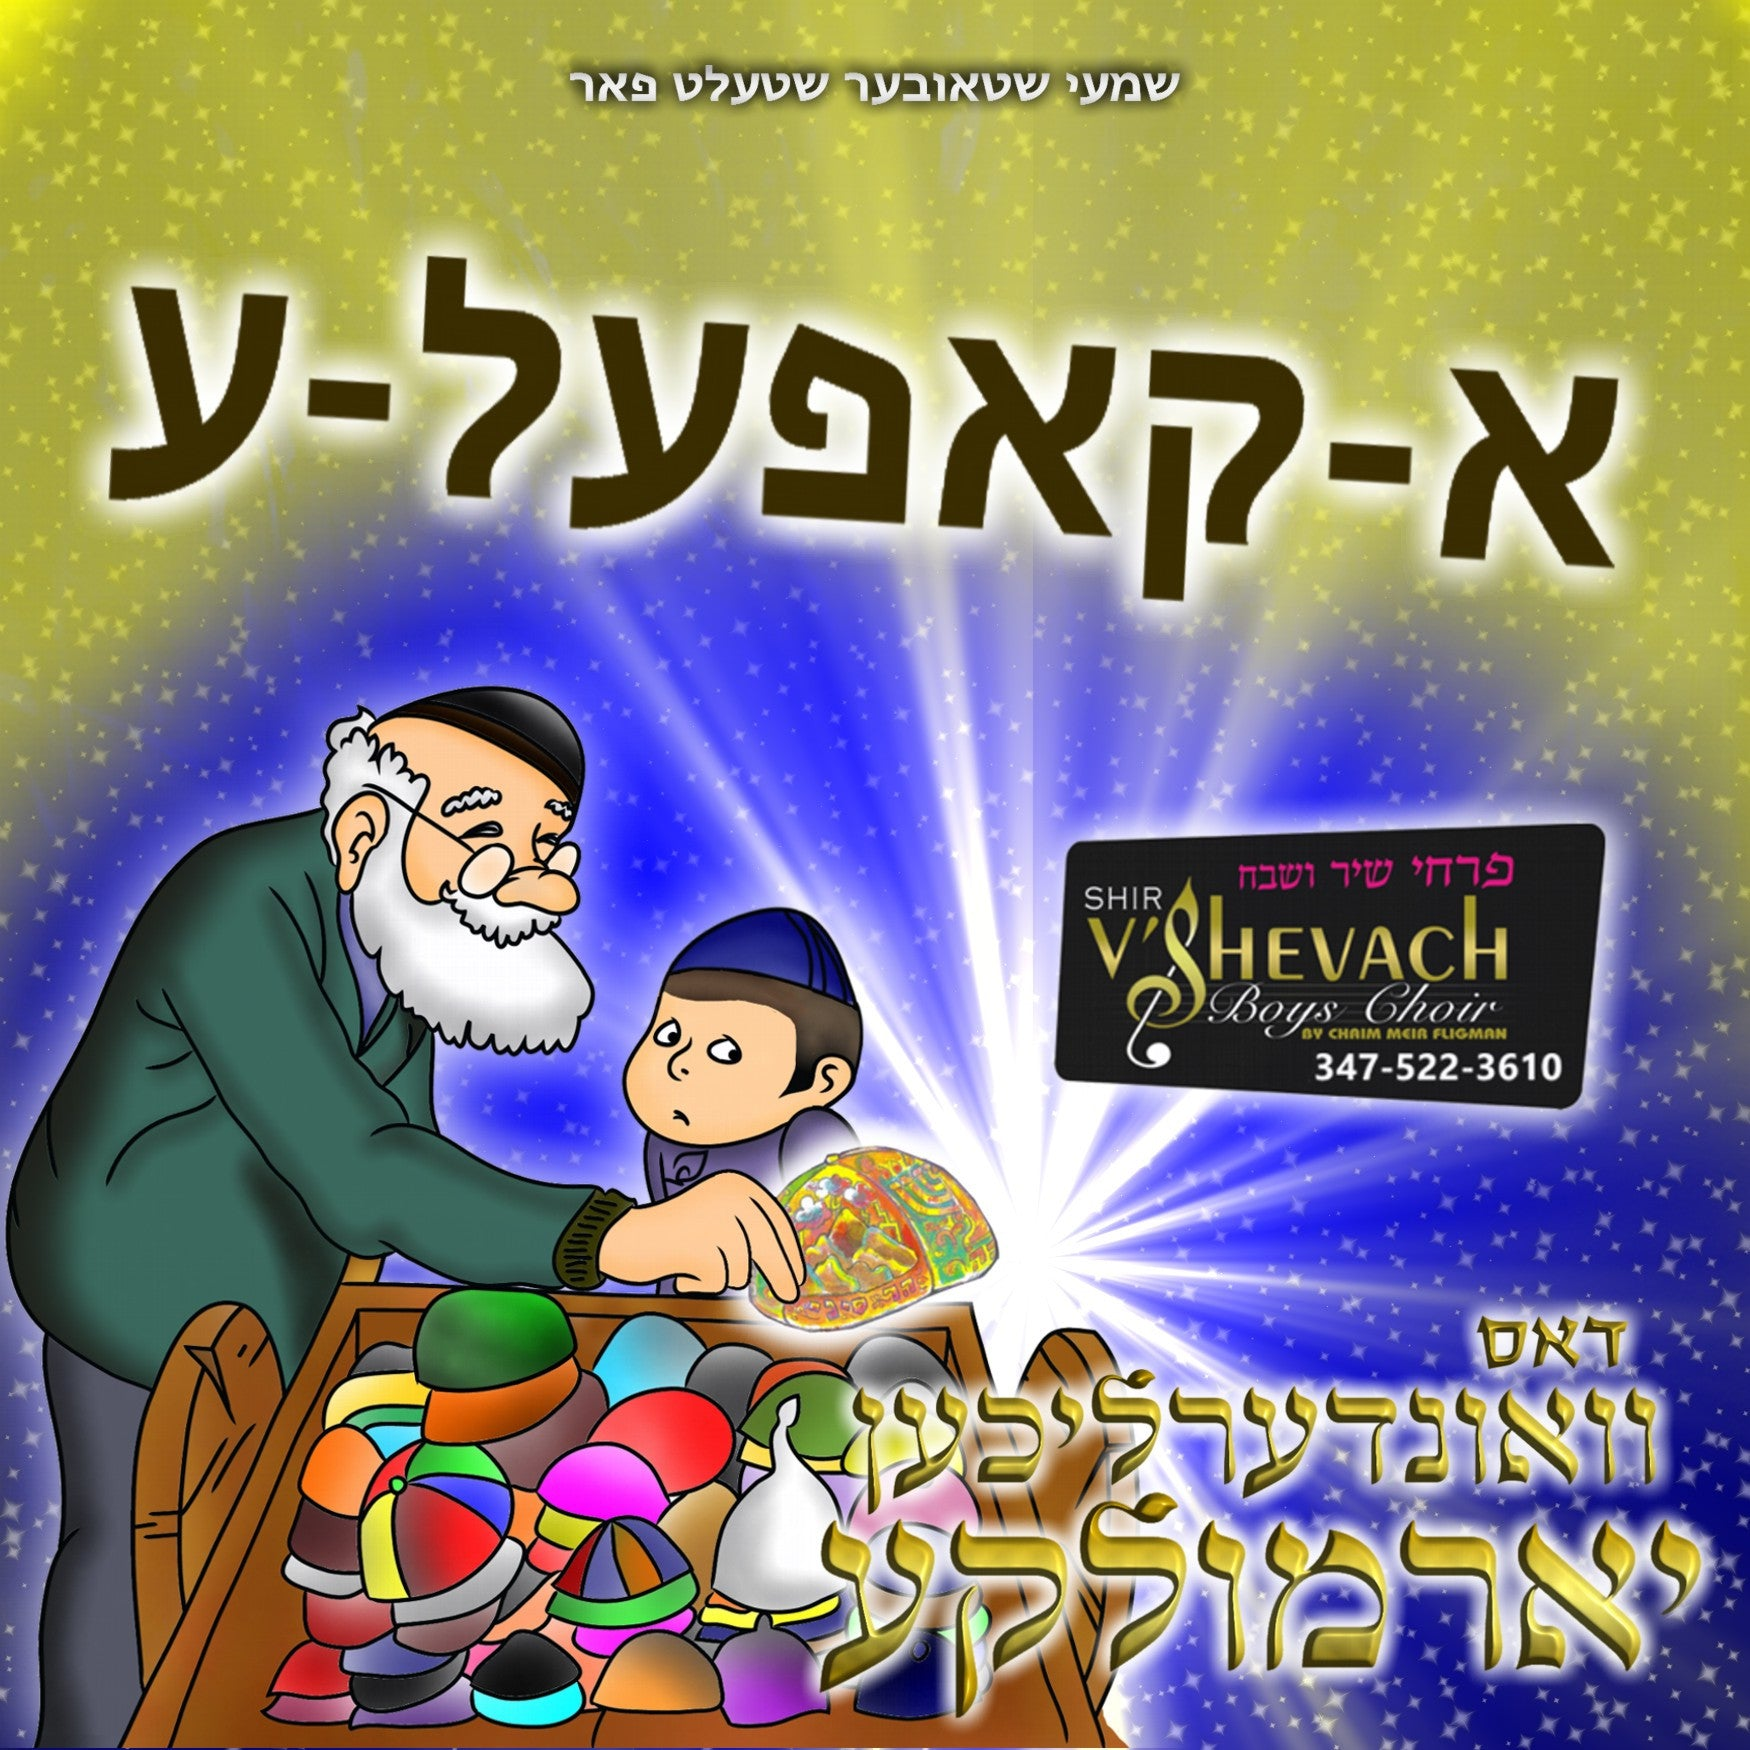 Dus Vinderliche Yarmulka - Free Acapella Single